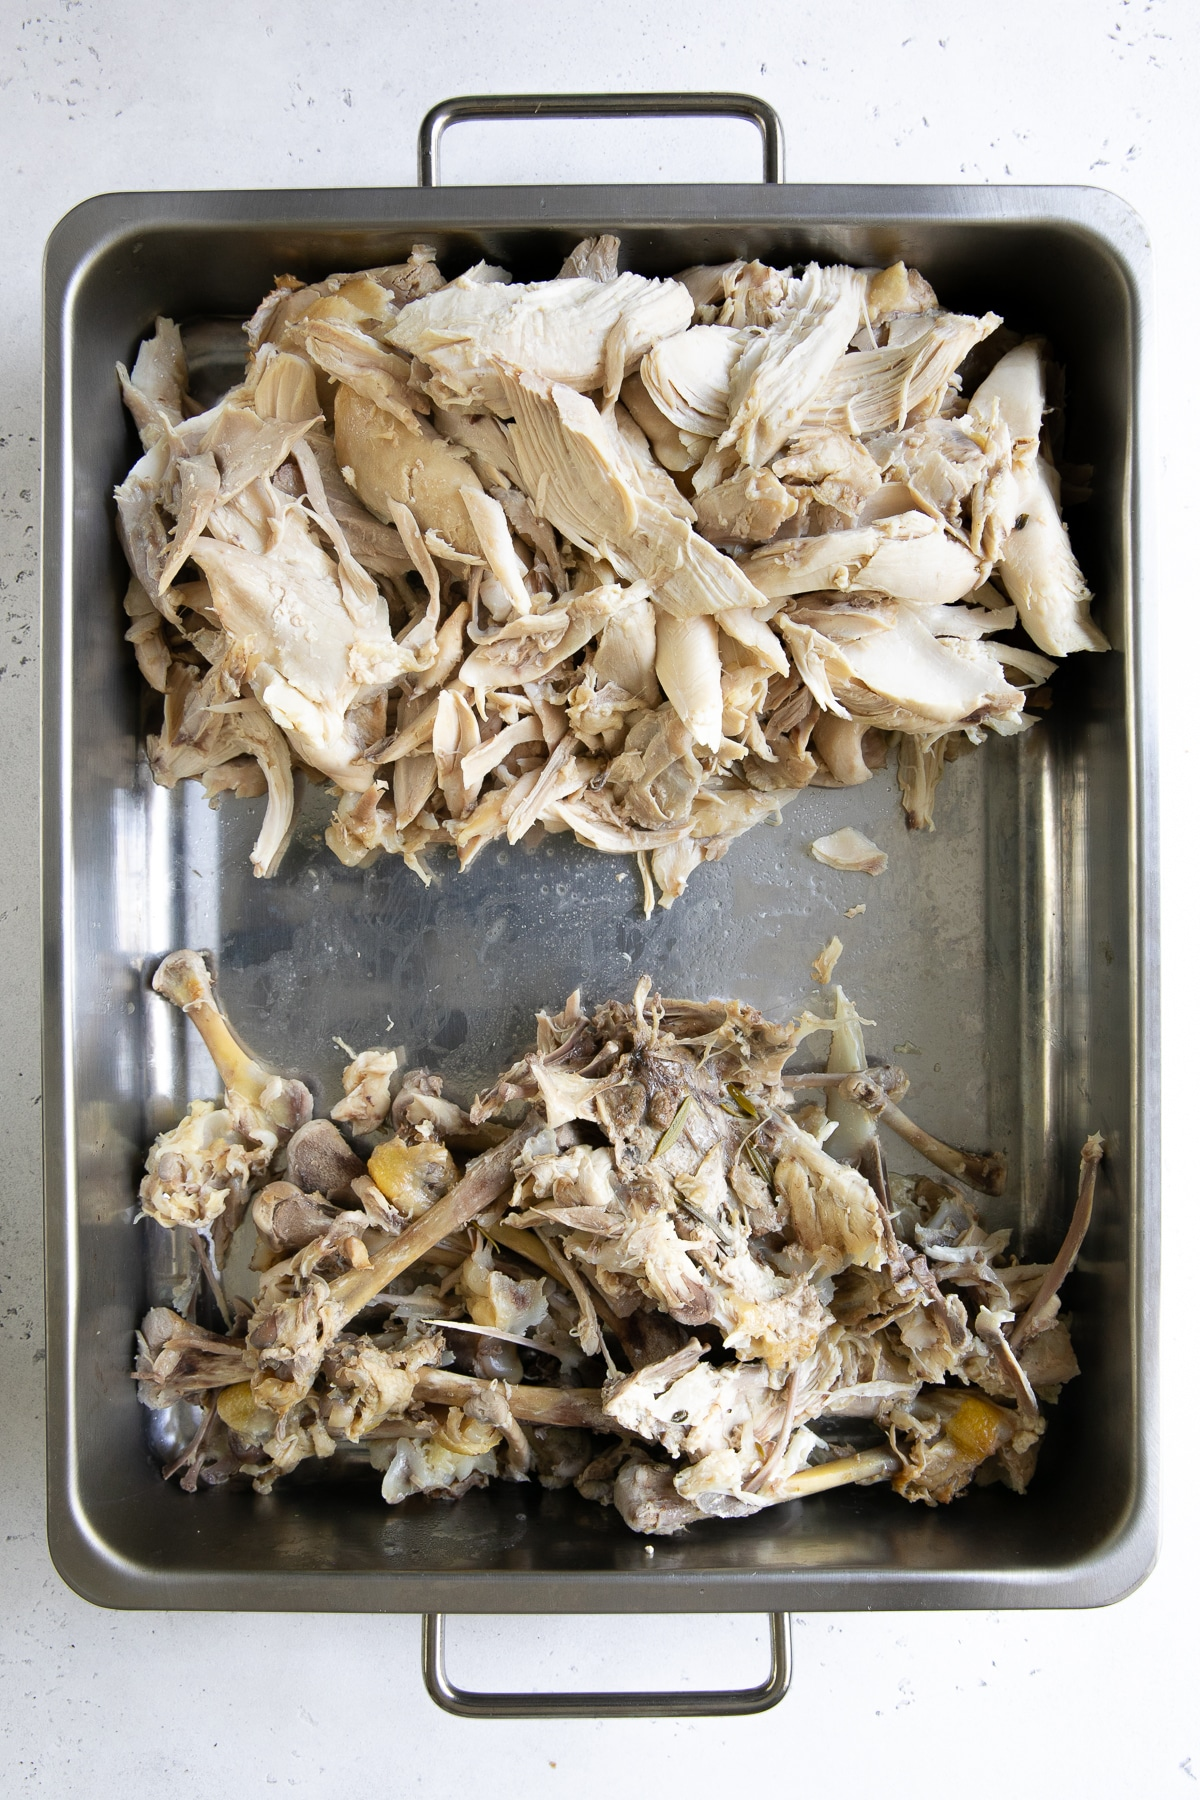 Large roasting pan with shredded chicken on one side and the chicken bones on the other.